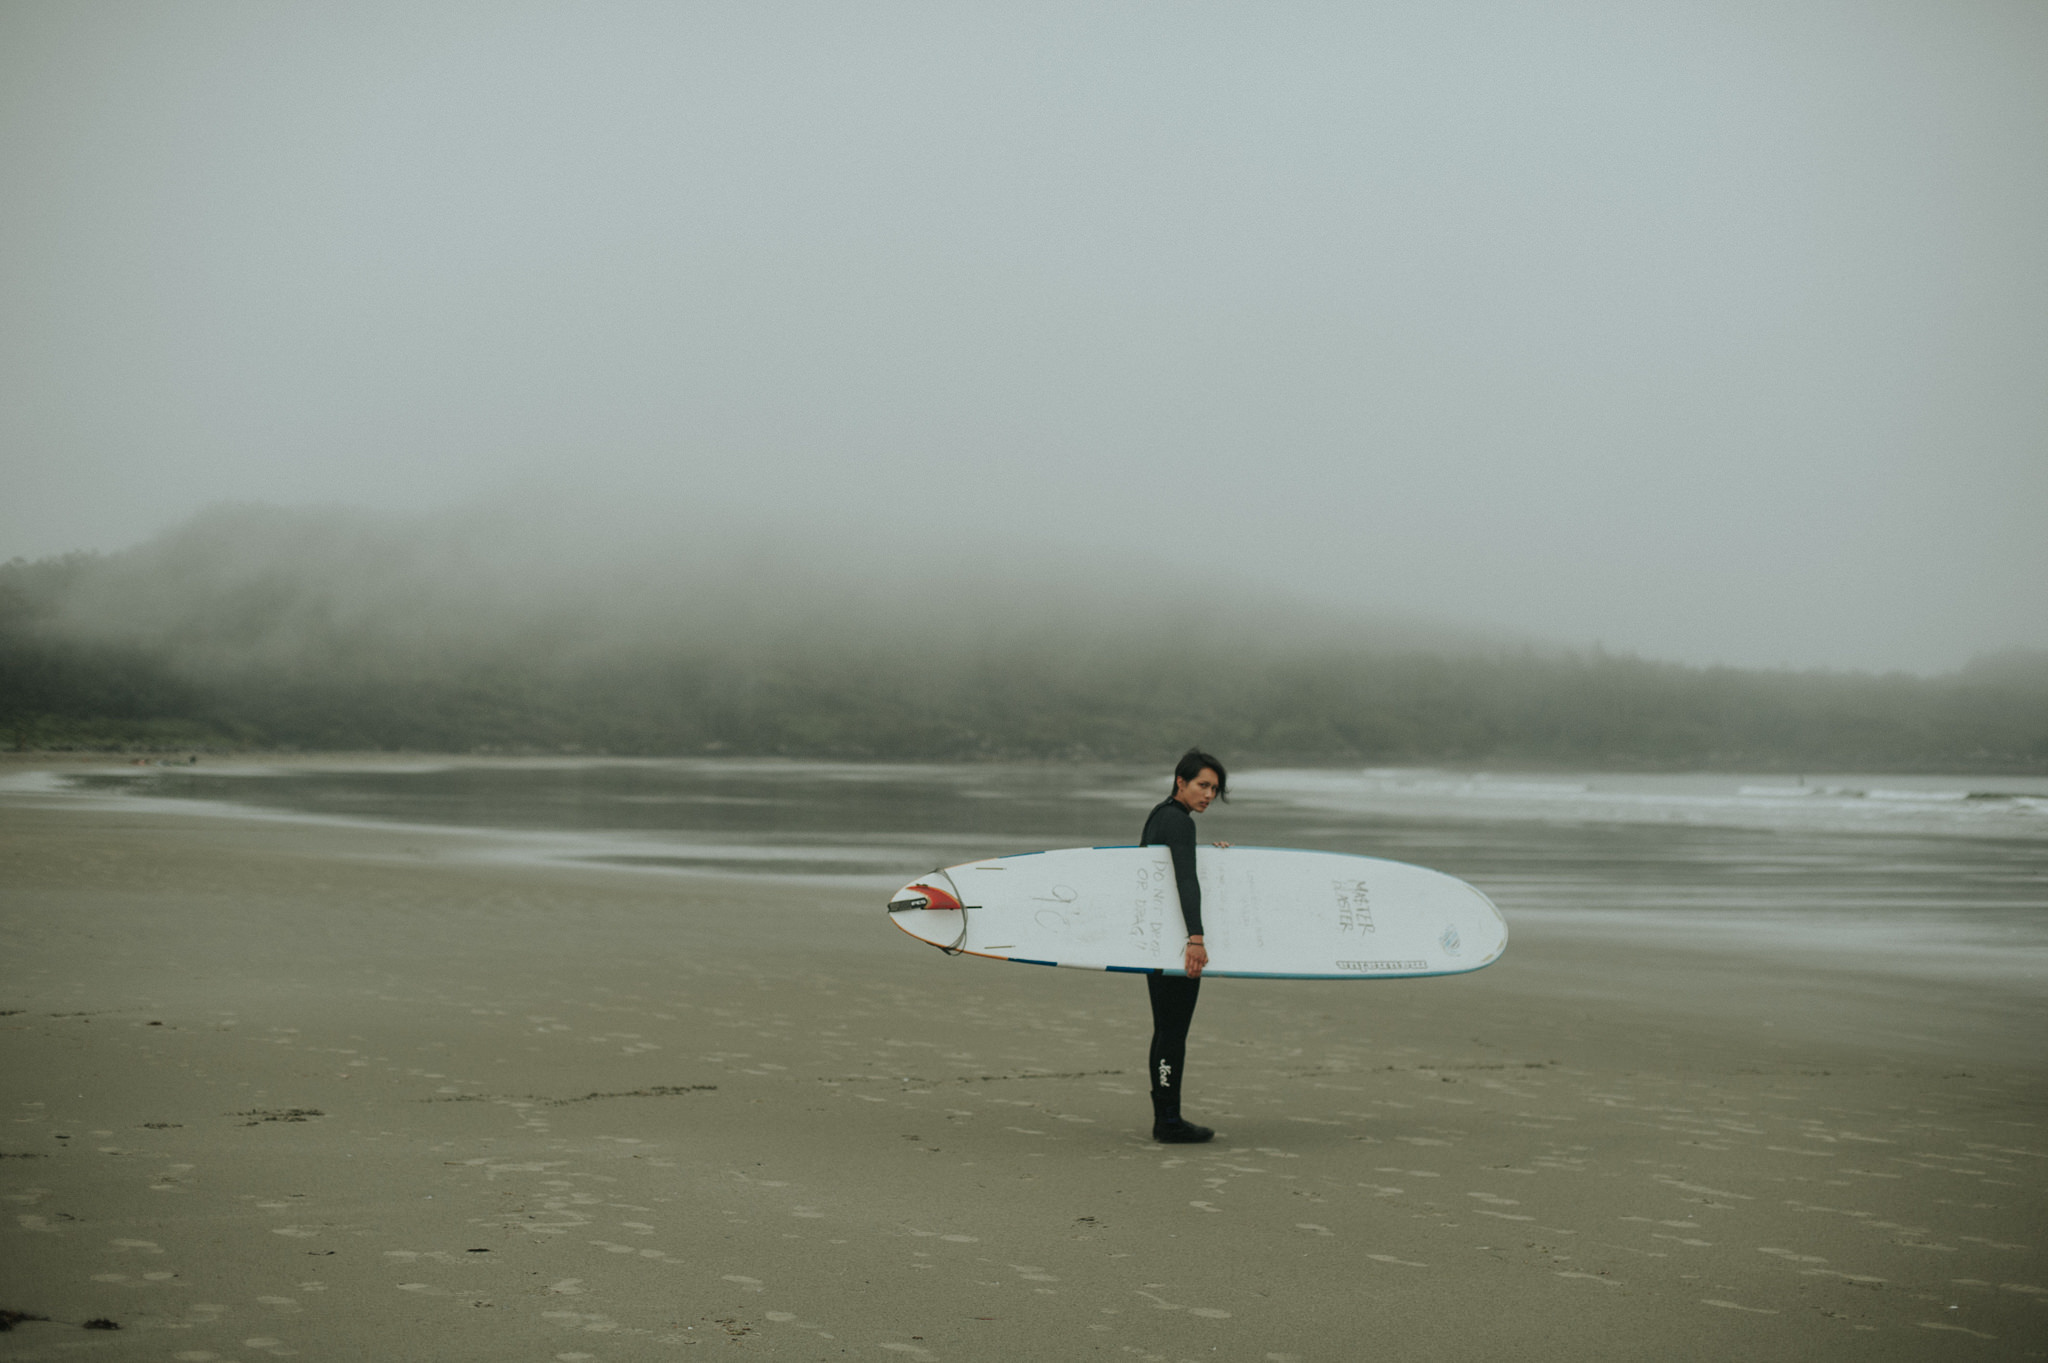 Surfer in Tofino